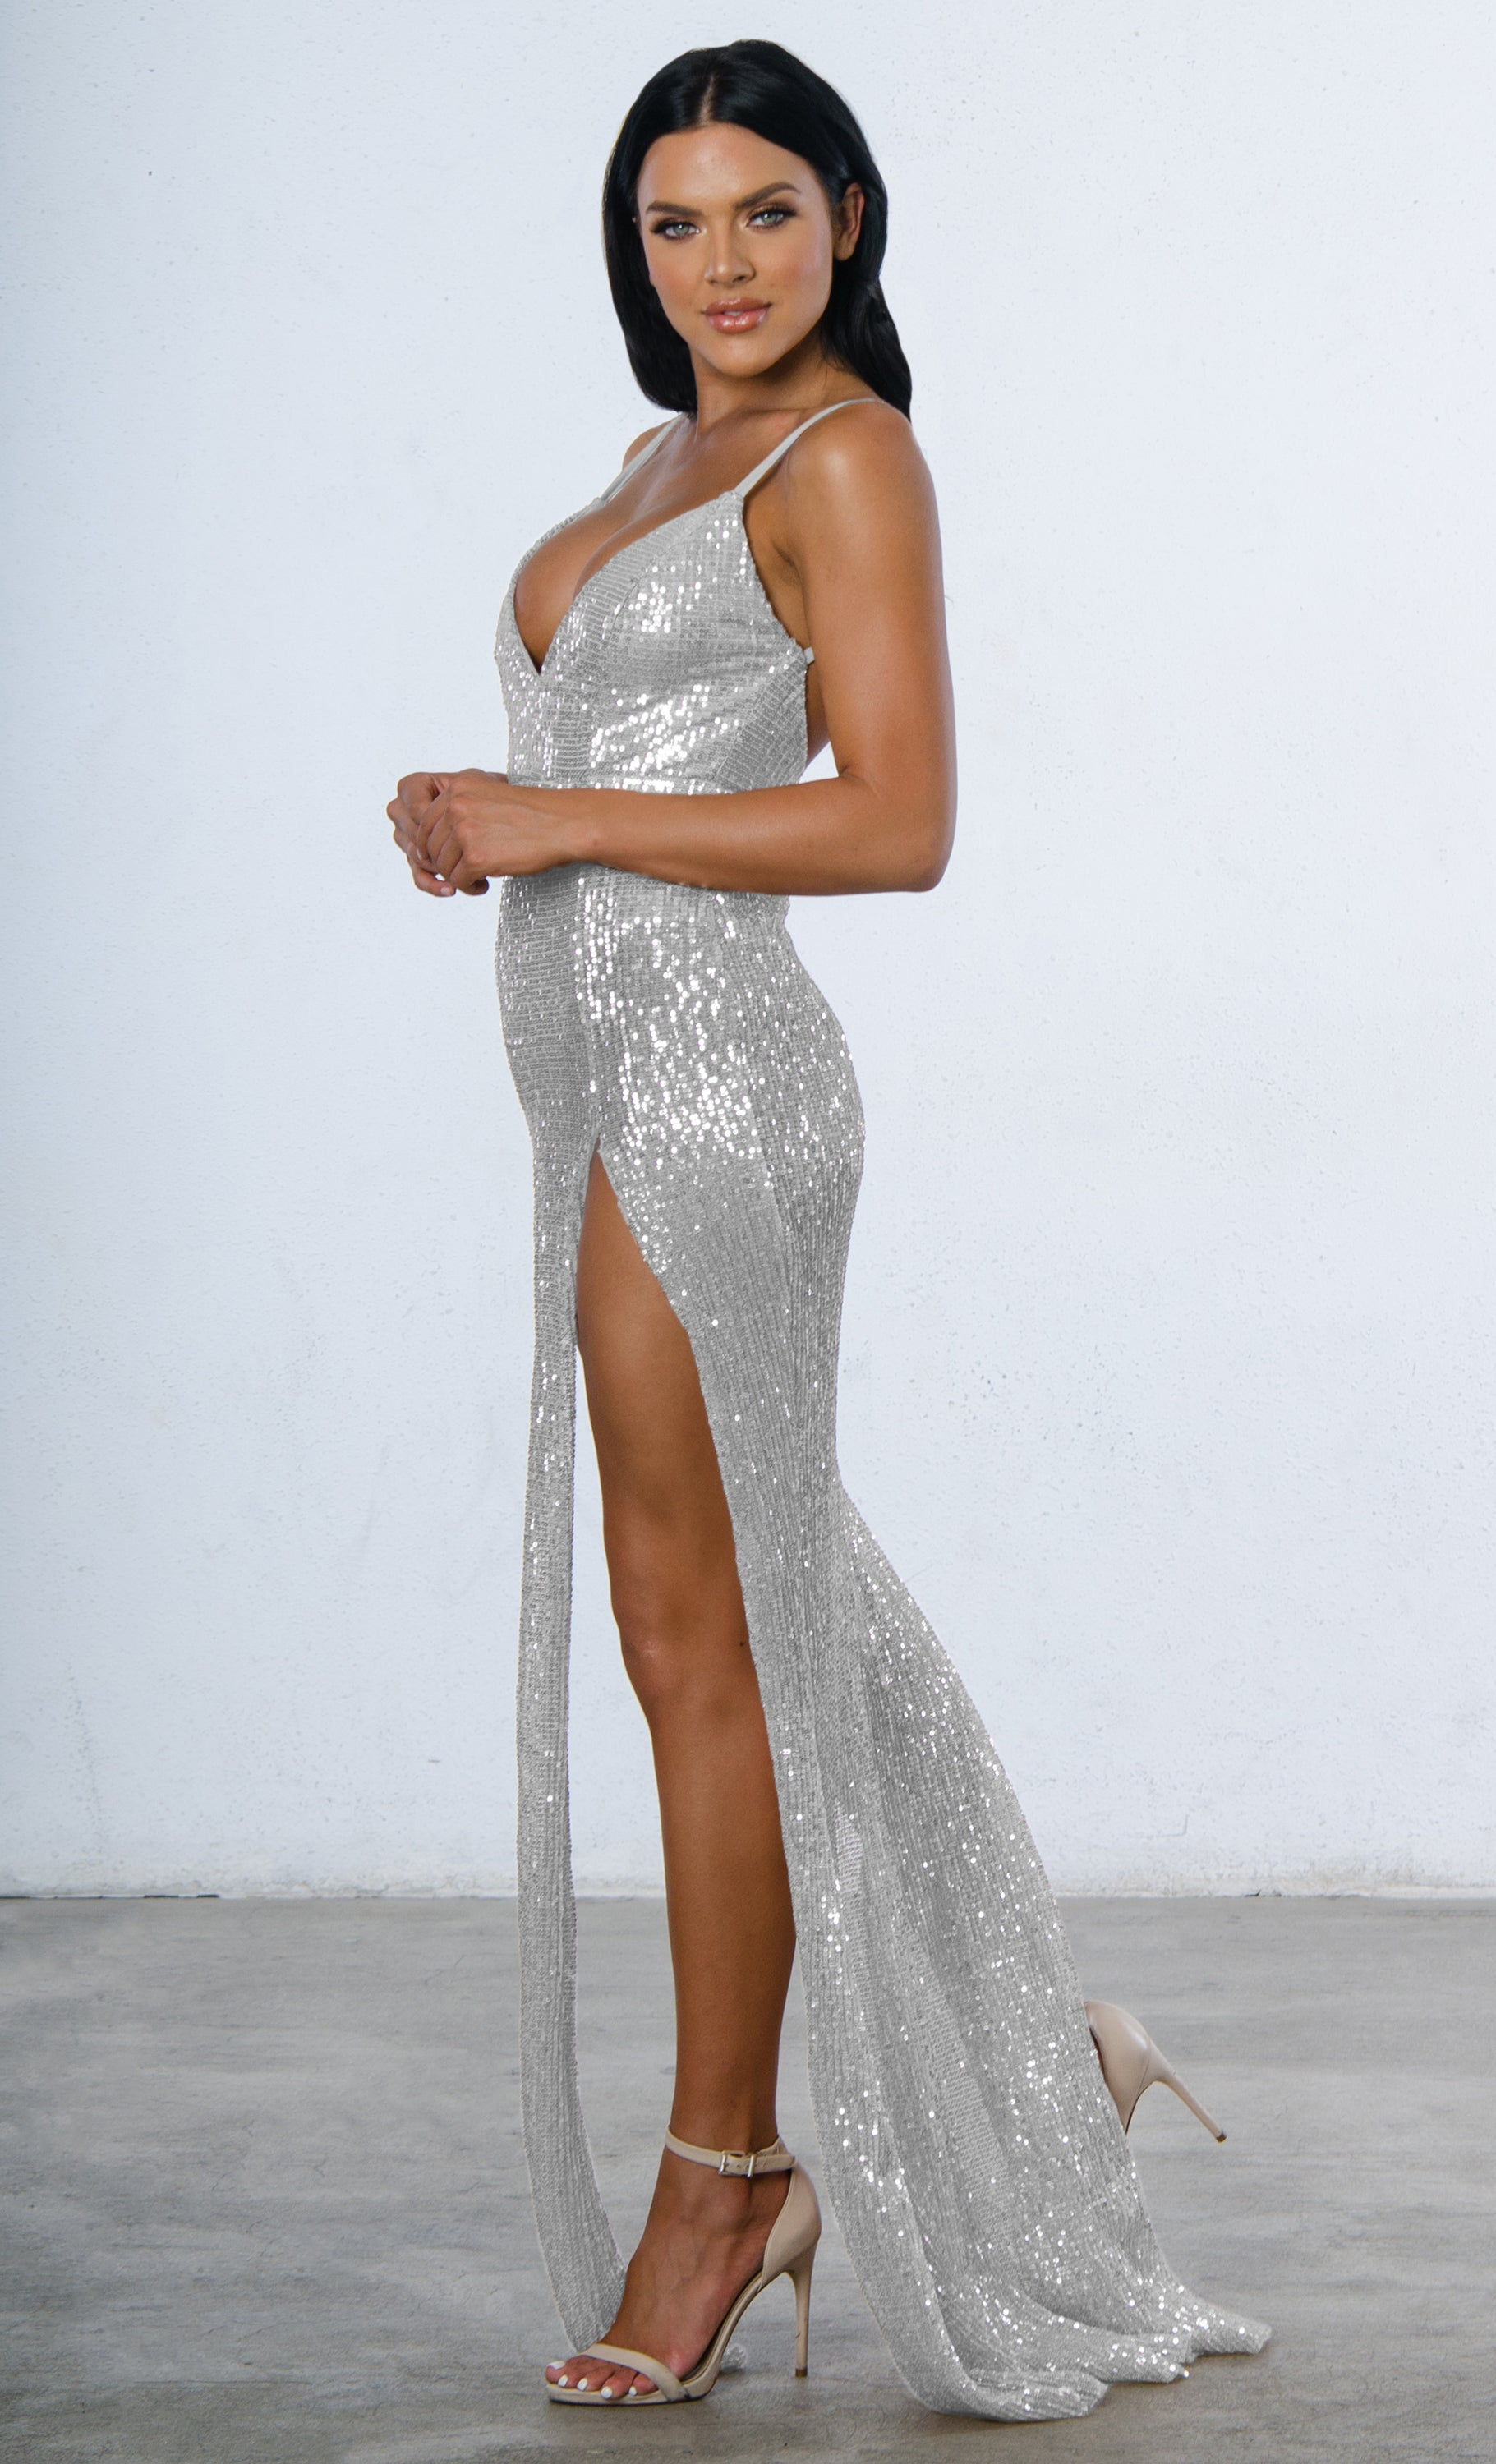 b326b1acc9a Indie XO Mystery Girl Silver Semi Sheer Sequin Sleeveless Spaghetti Strap  Plunge V Neck Backless Double